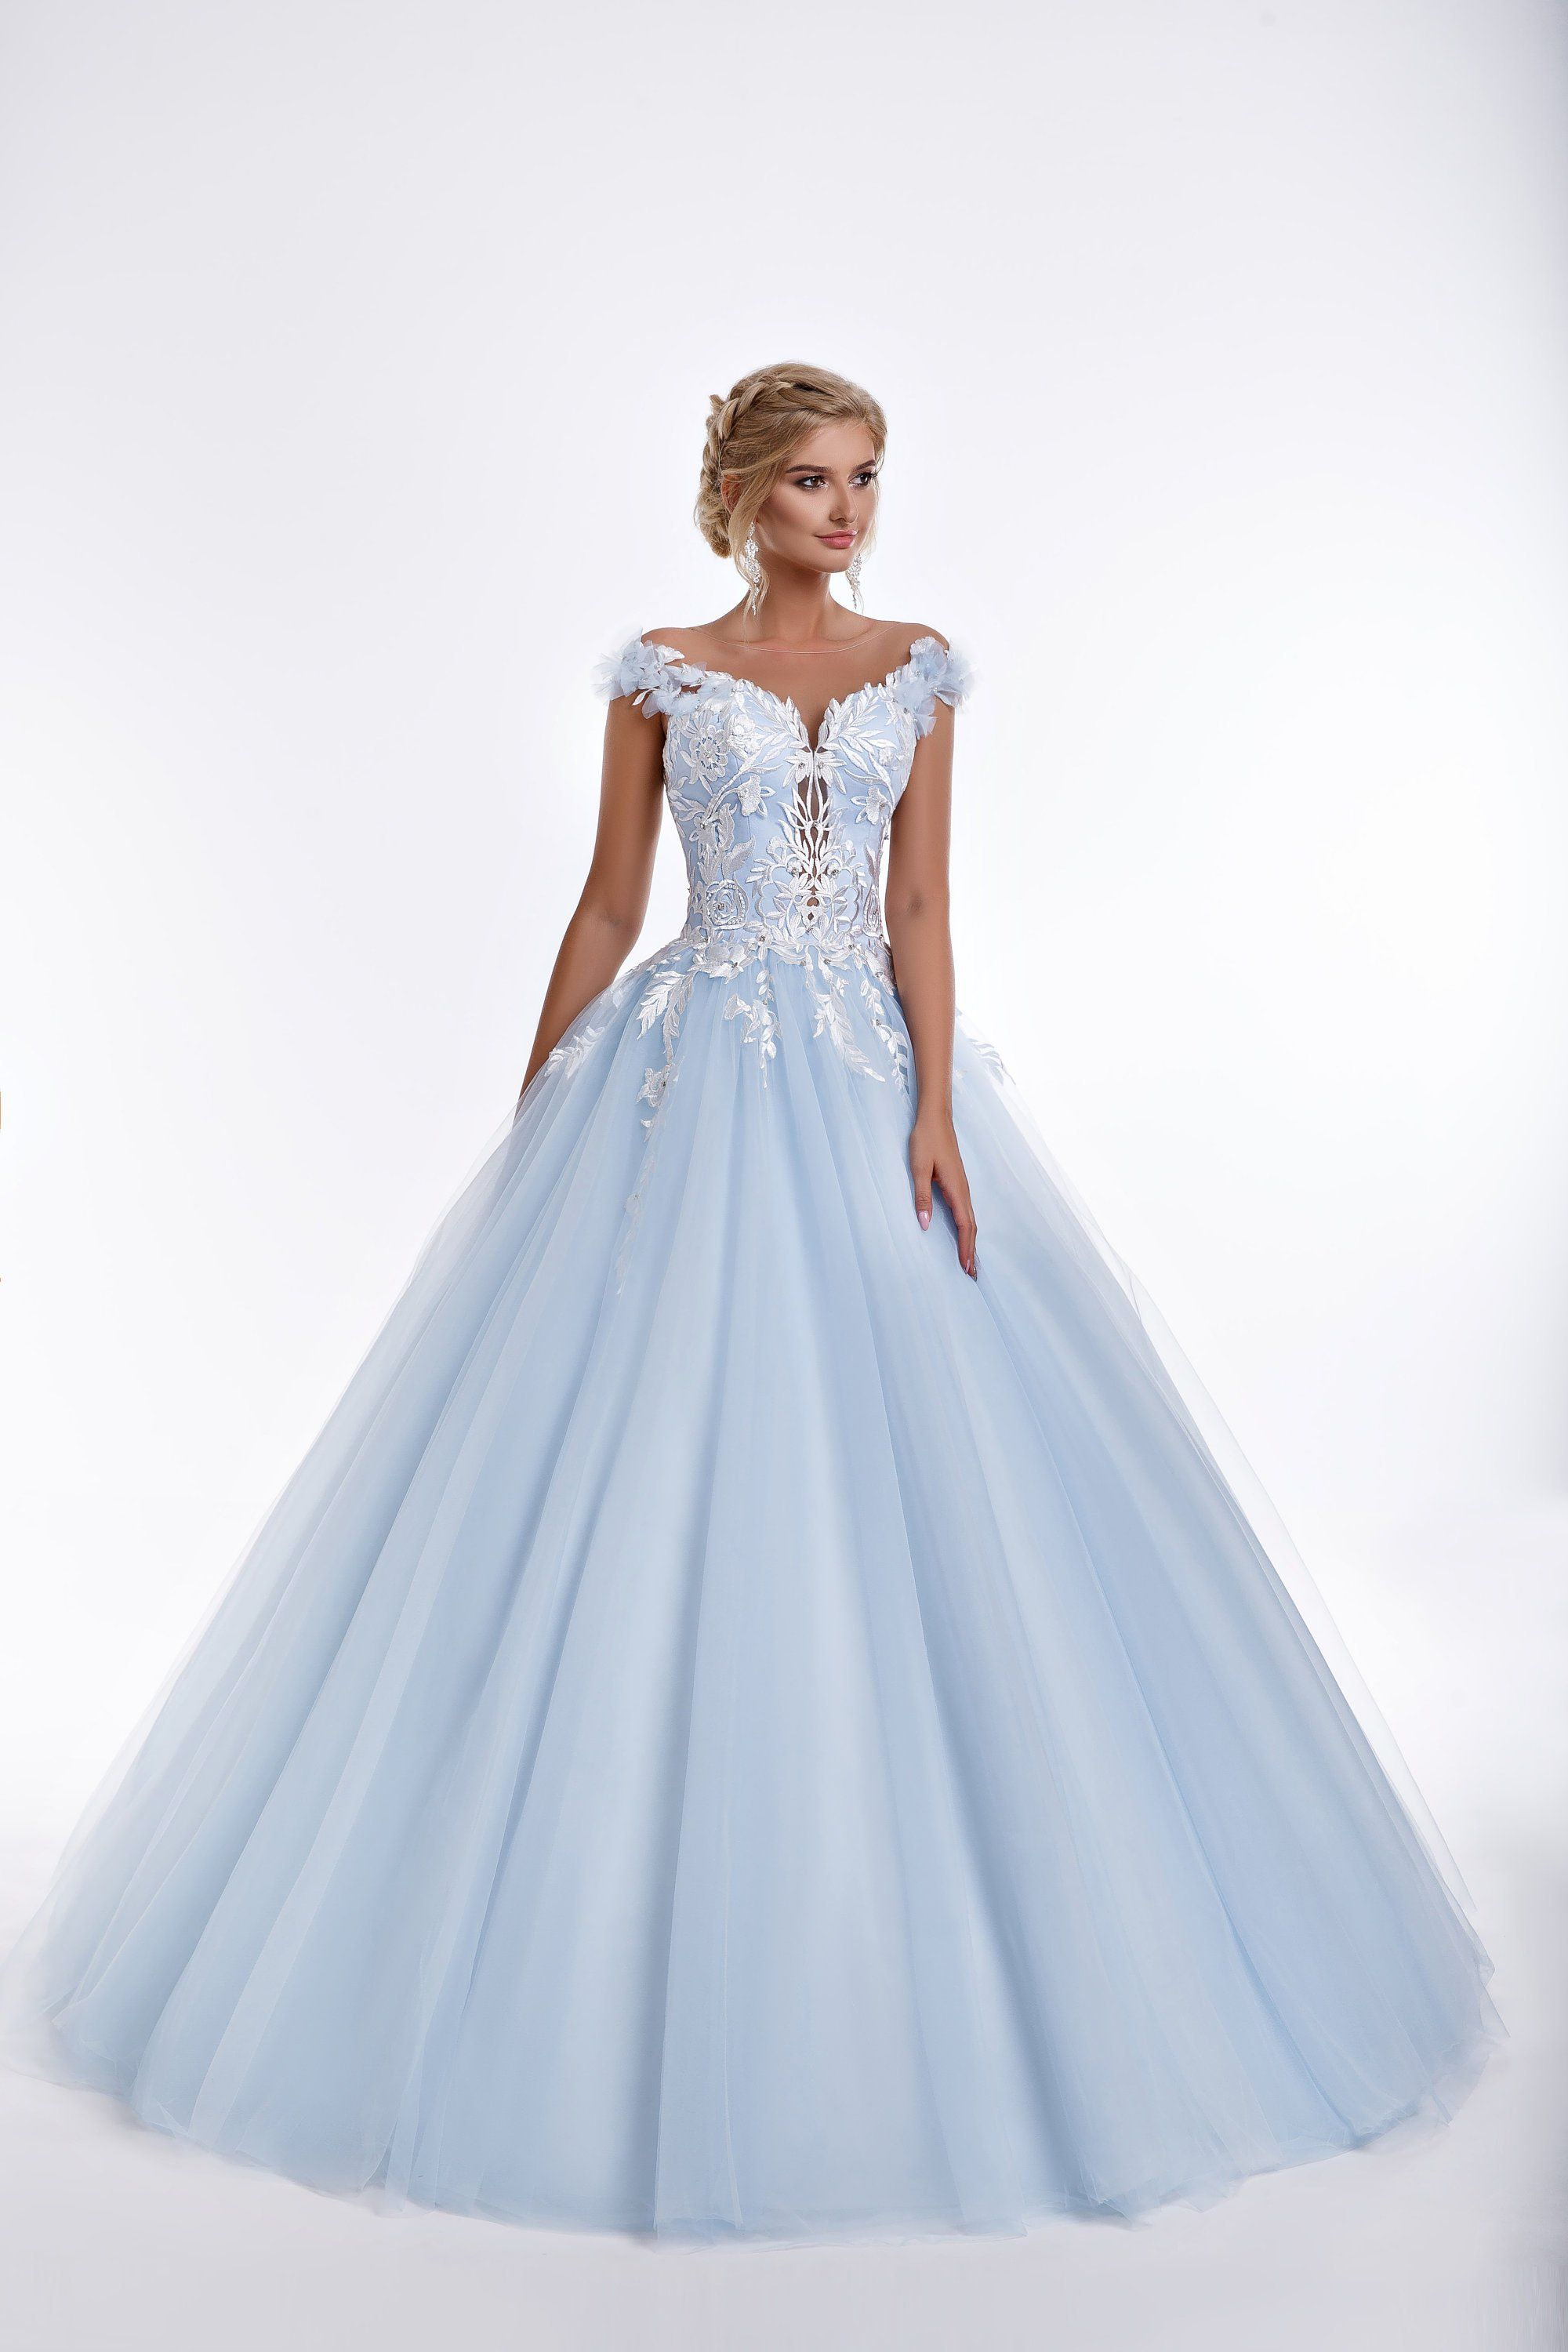 Princess Style Beaded Lace and Tulle Ball Gown Wedding